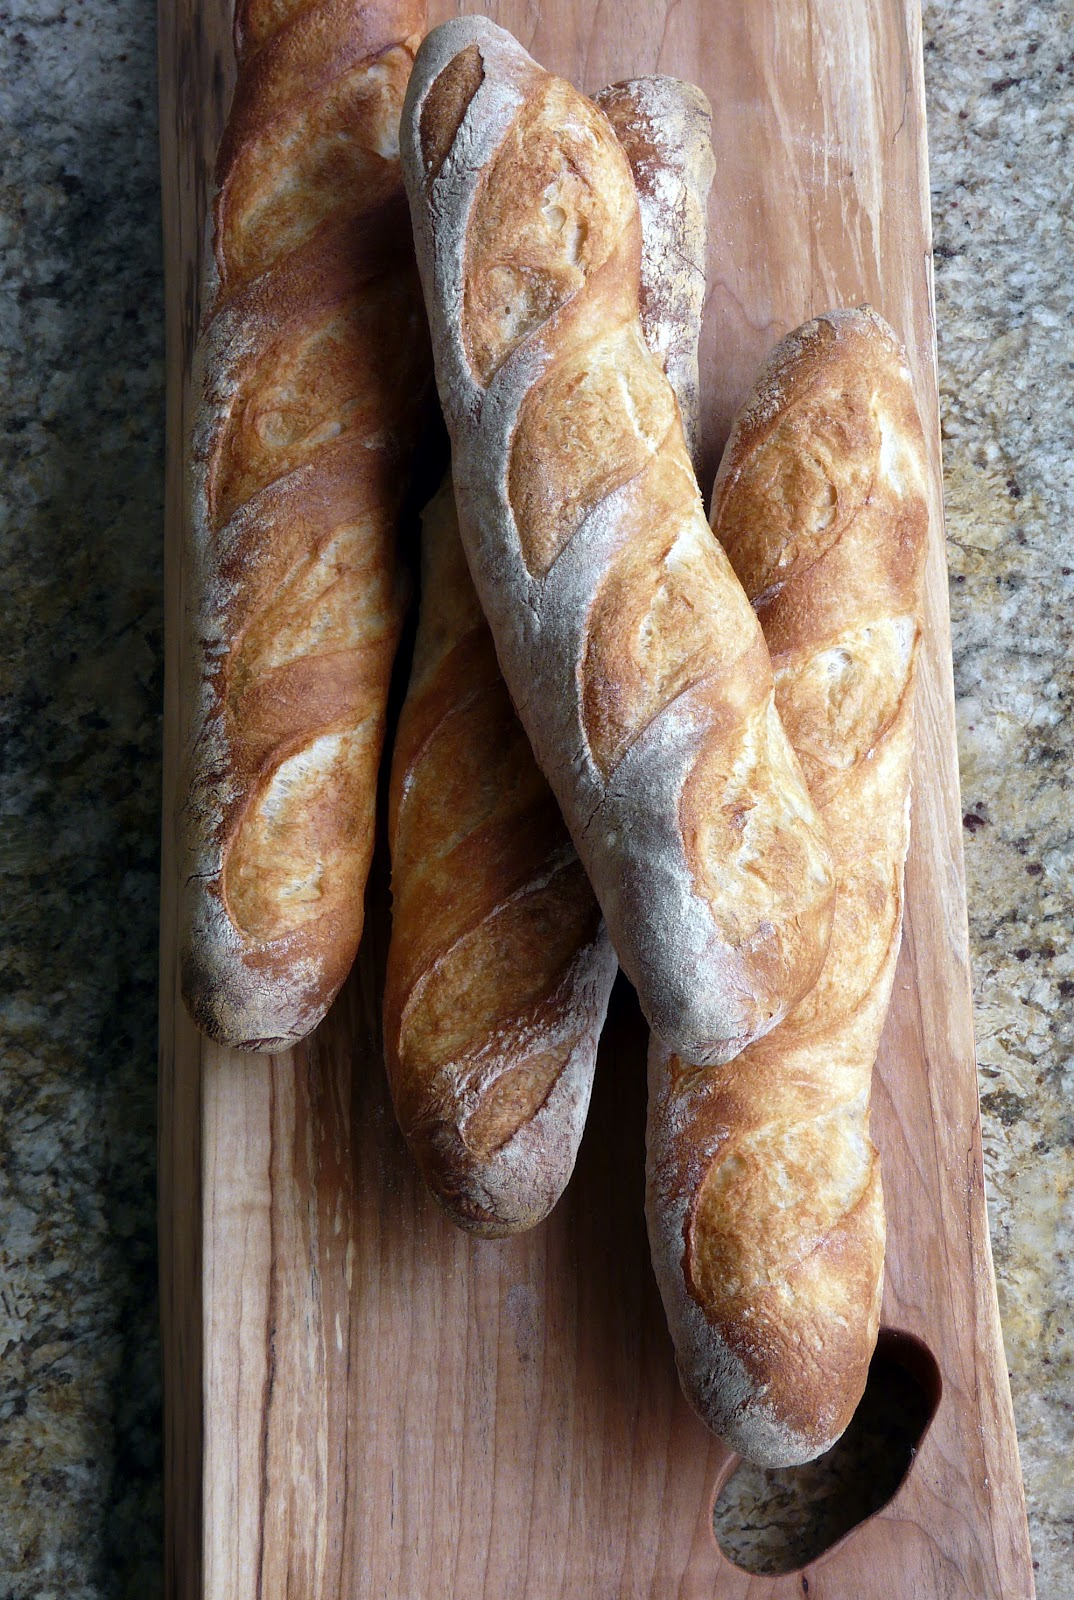 French Baguette Recipe Bake day - french baguettes